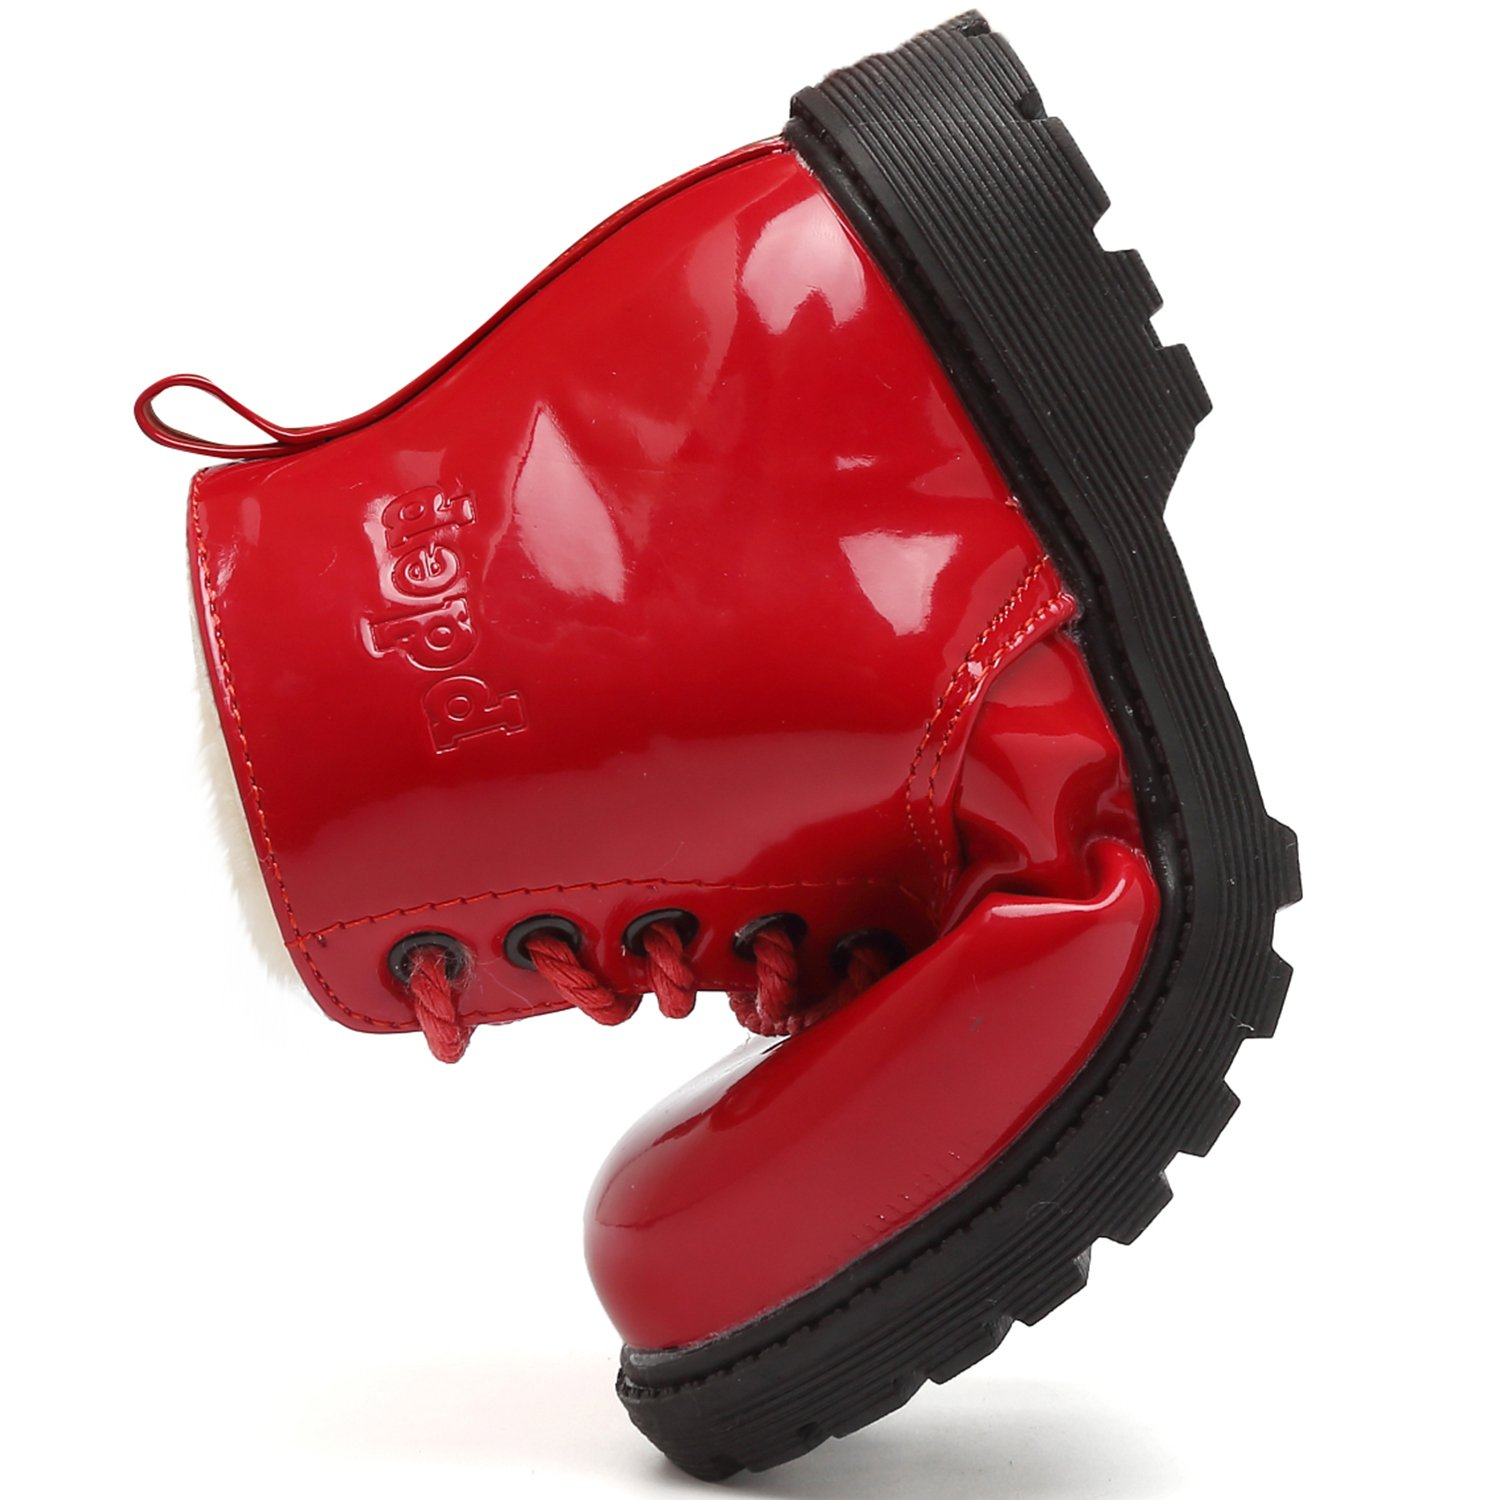 Toddler//Little Kid CIOR Girls Fashion Winter Warm Ankle Boots Zipper Cute Casual Shoes with Fur CAND042.Blue.28 Red CAND042-Red.26